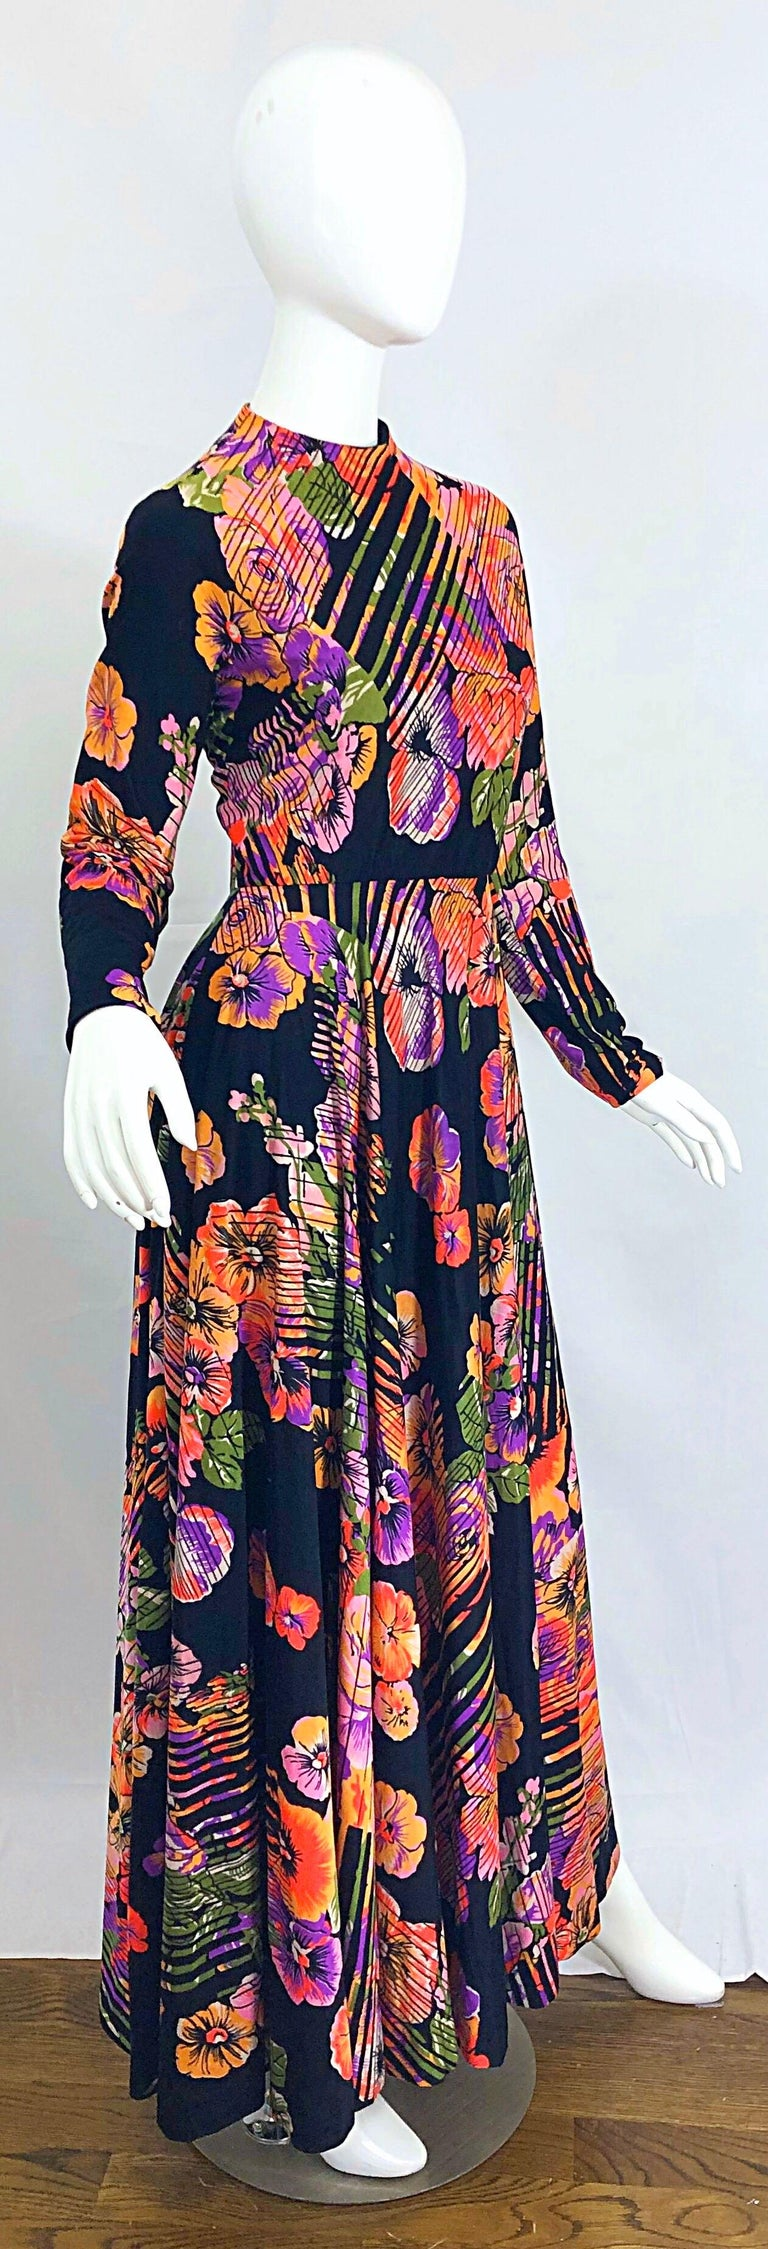 Geoffrey Beene 1970s Abstract Flower Print Long Sleeve High Neck 70s Maxi Dress For Sale 6